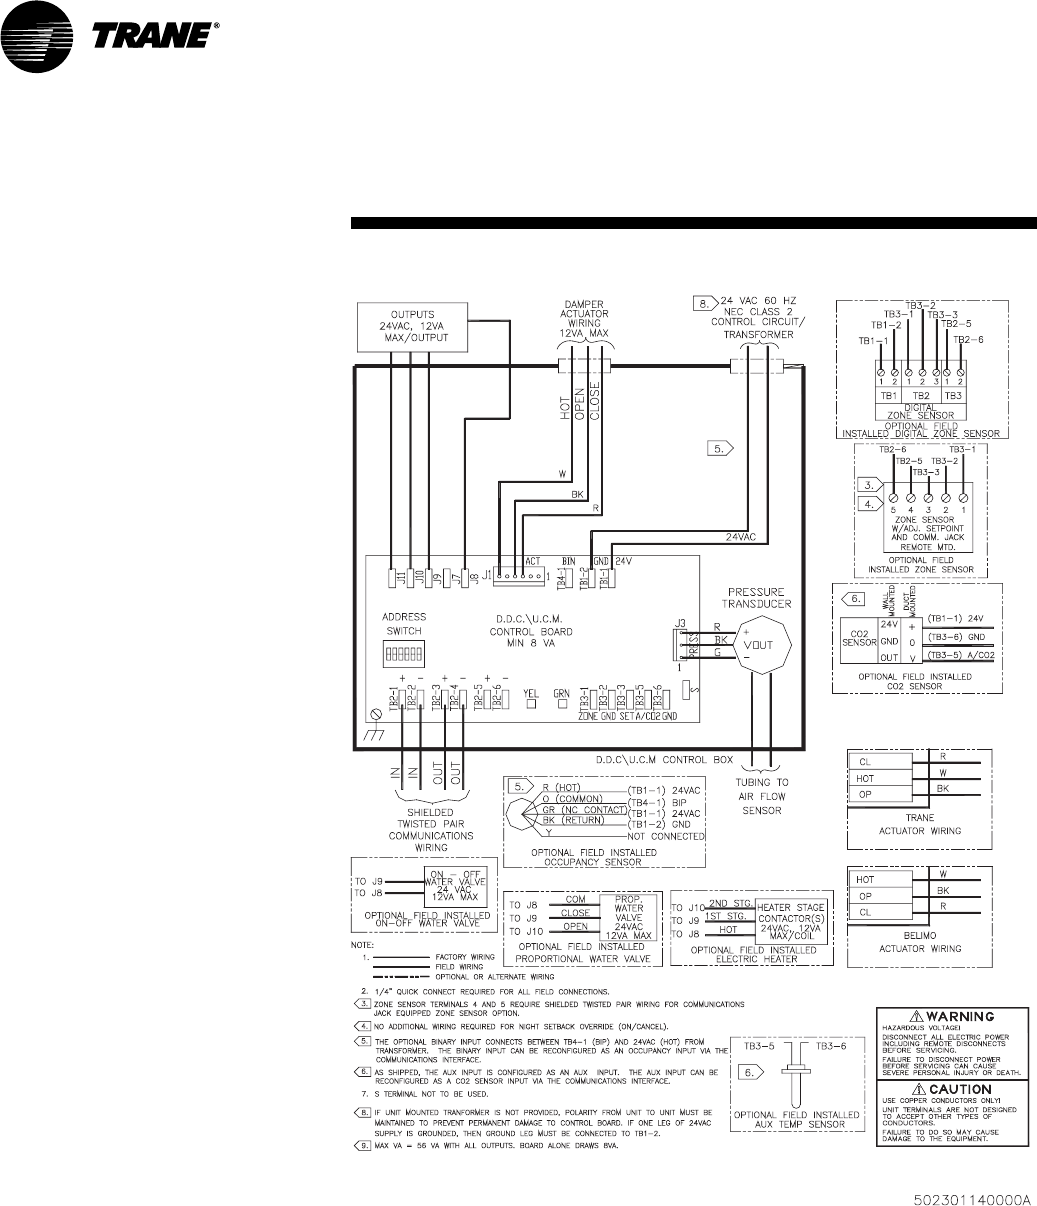 d4caf1d7 0cc1 45f7 9cd7 ab973dff8ed8 bg6 page 6 of trane air conditioner unit control module (ucm) 4 2 wiring diagram for trane air conditioner at gsmportal.co